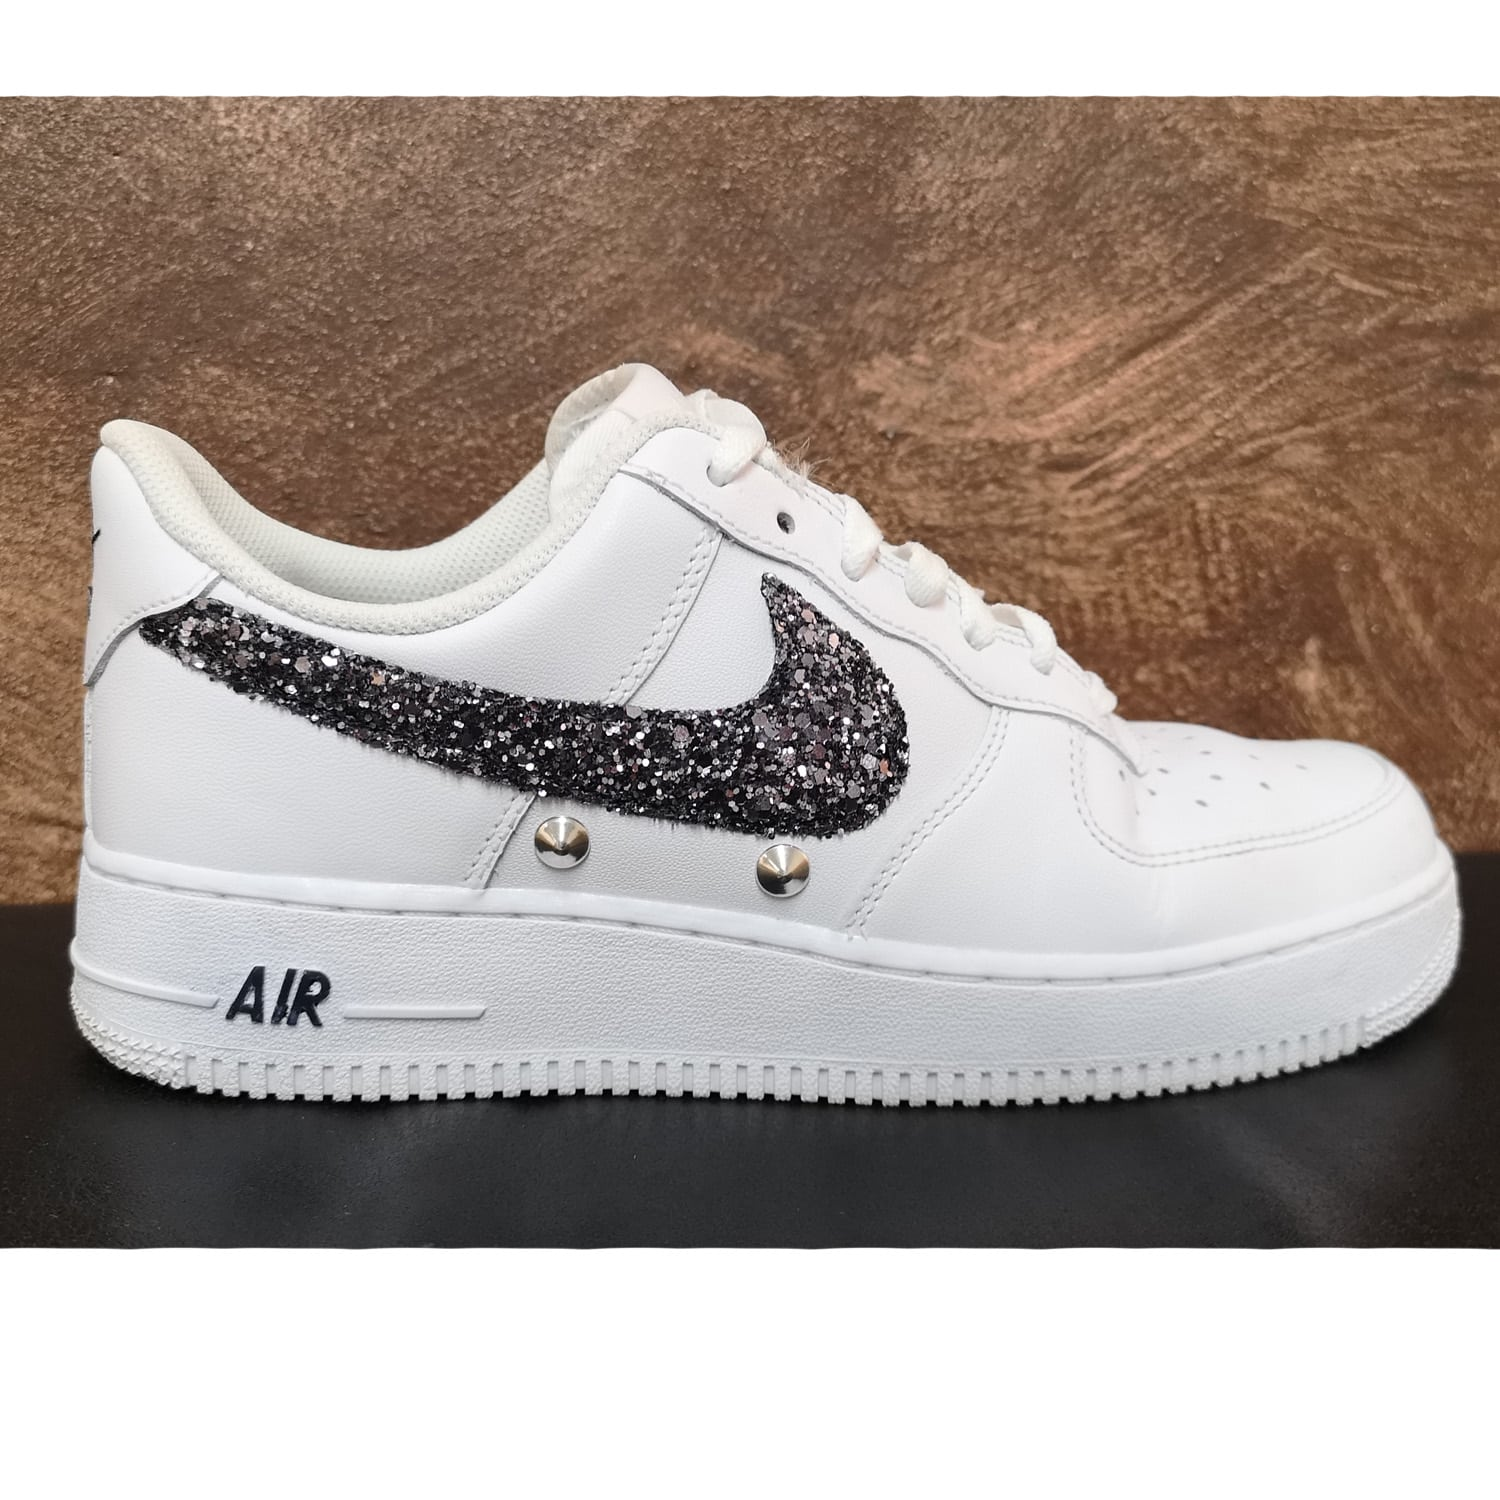 air force 1 donna brillantini